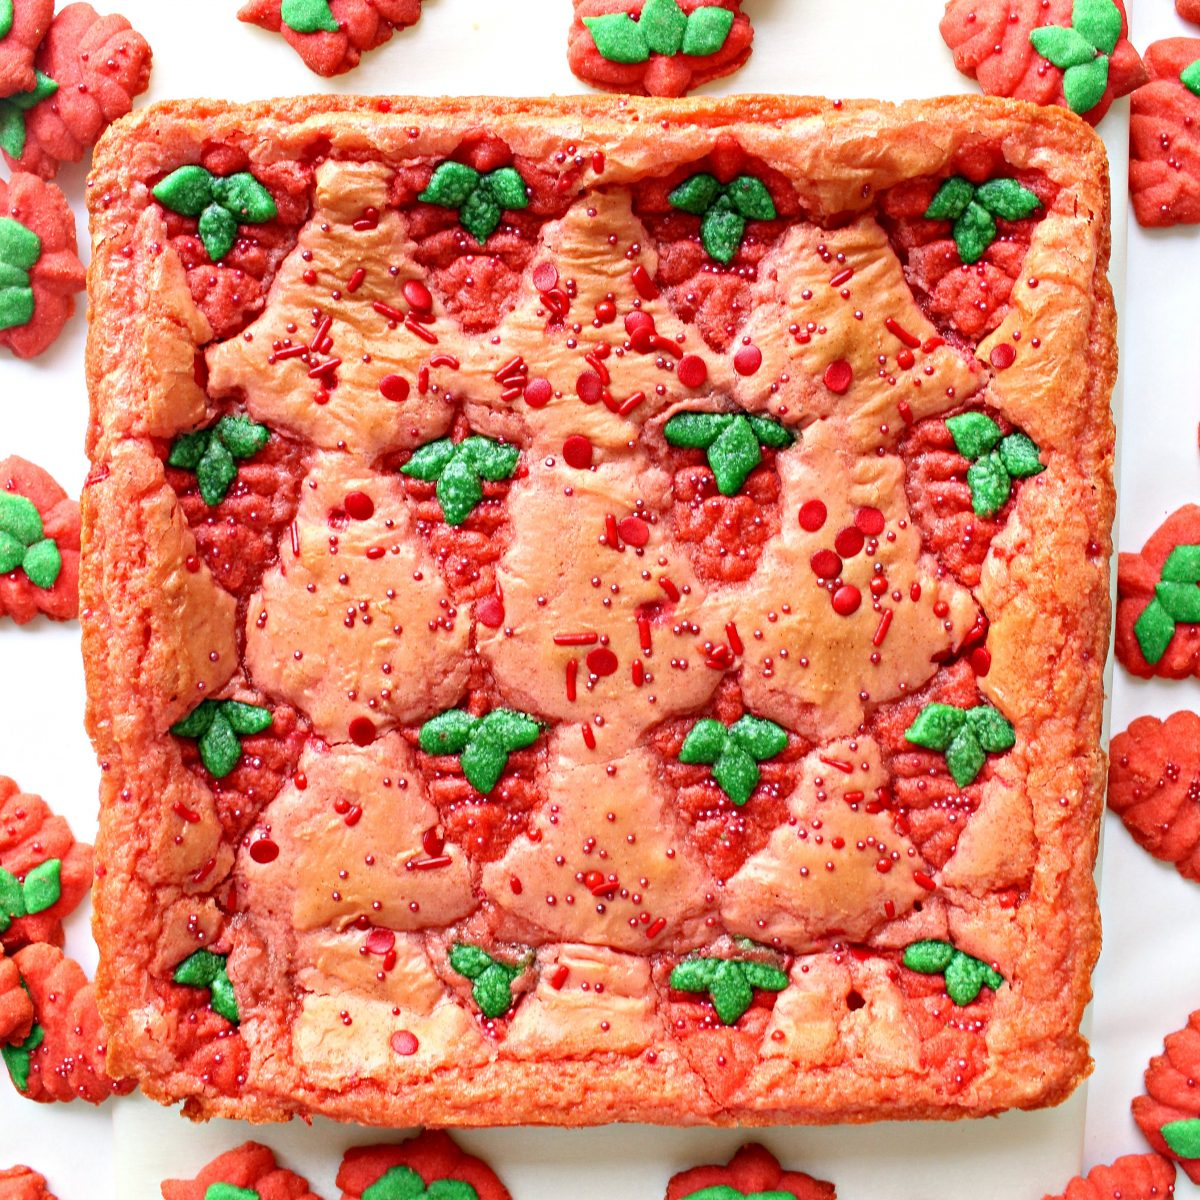 Uncut pan of Strawberry Brownies with Strawberry Press Cookies baked on top for decoration.